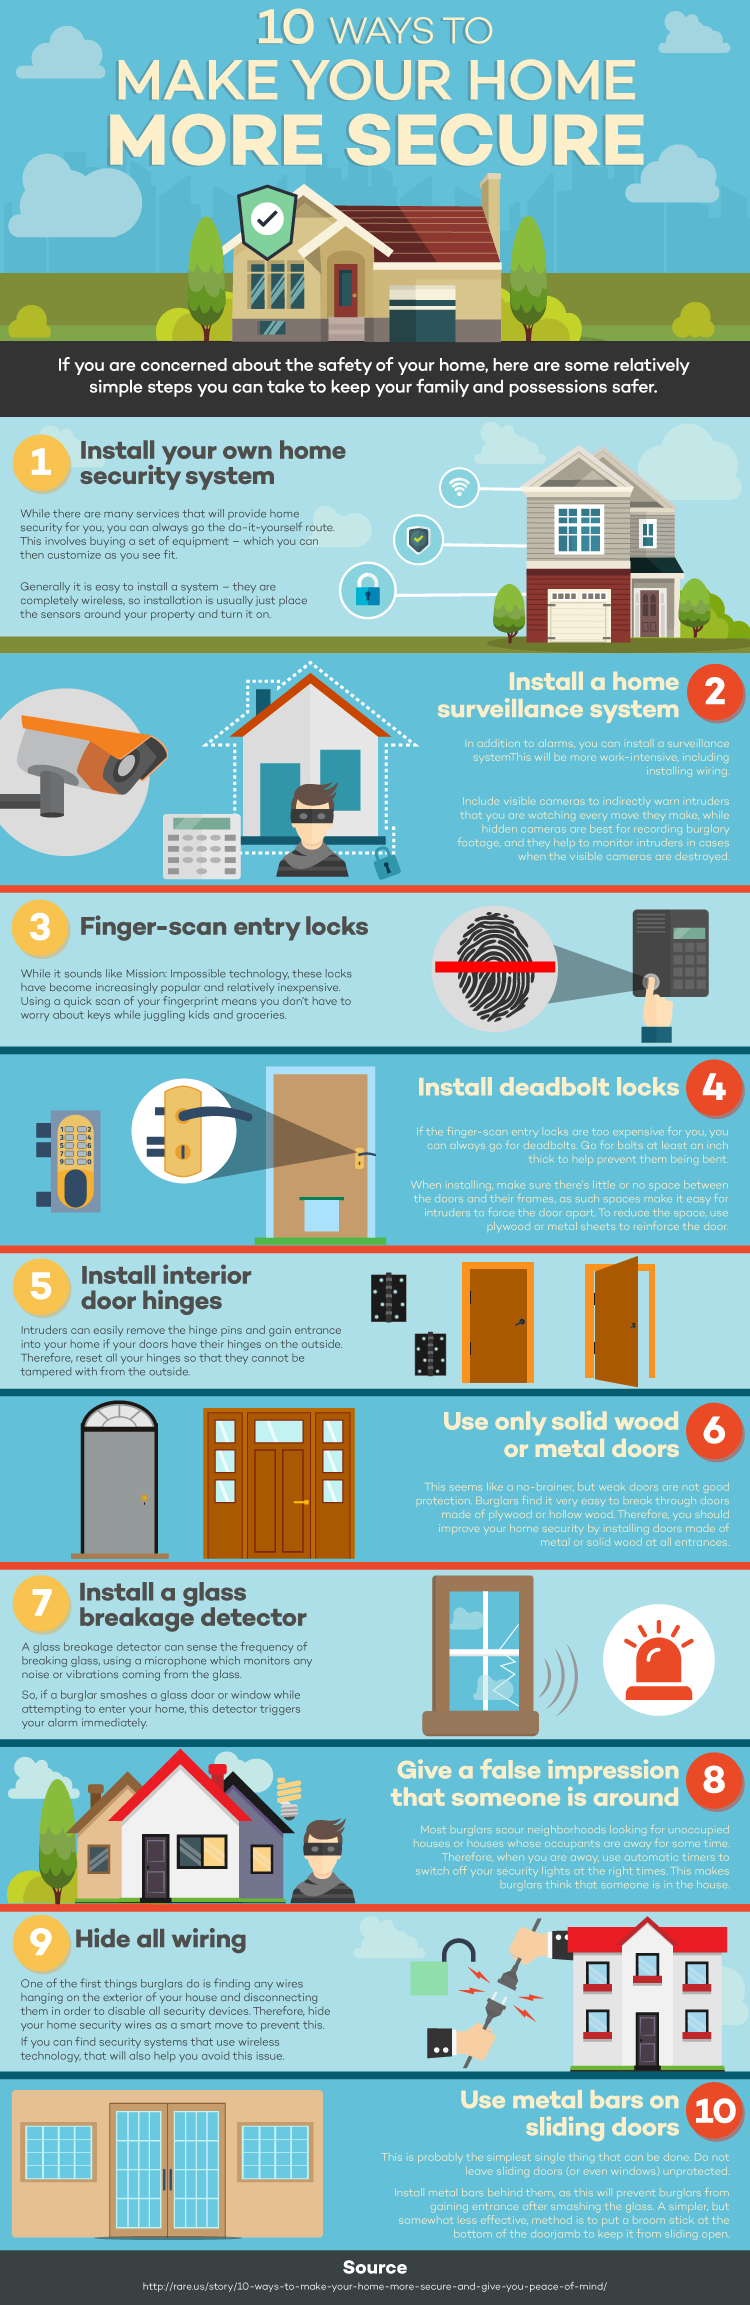 10 ways to make your home more secure